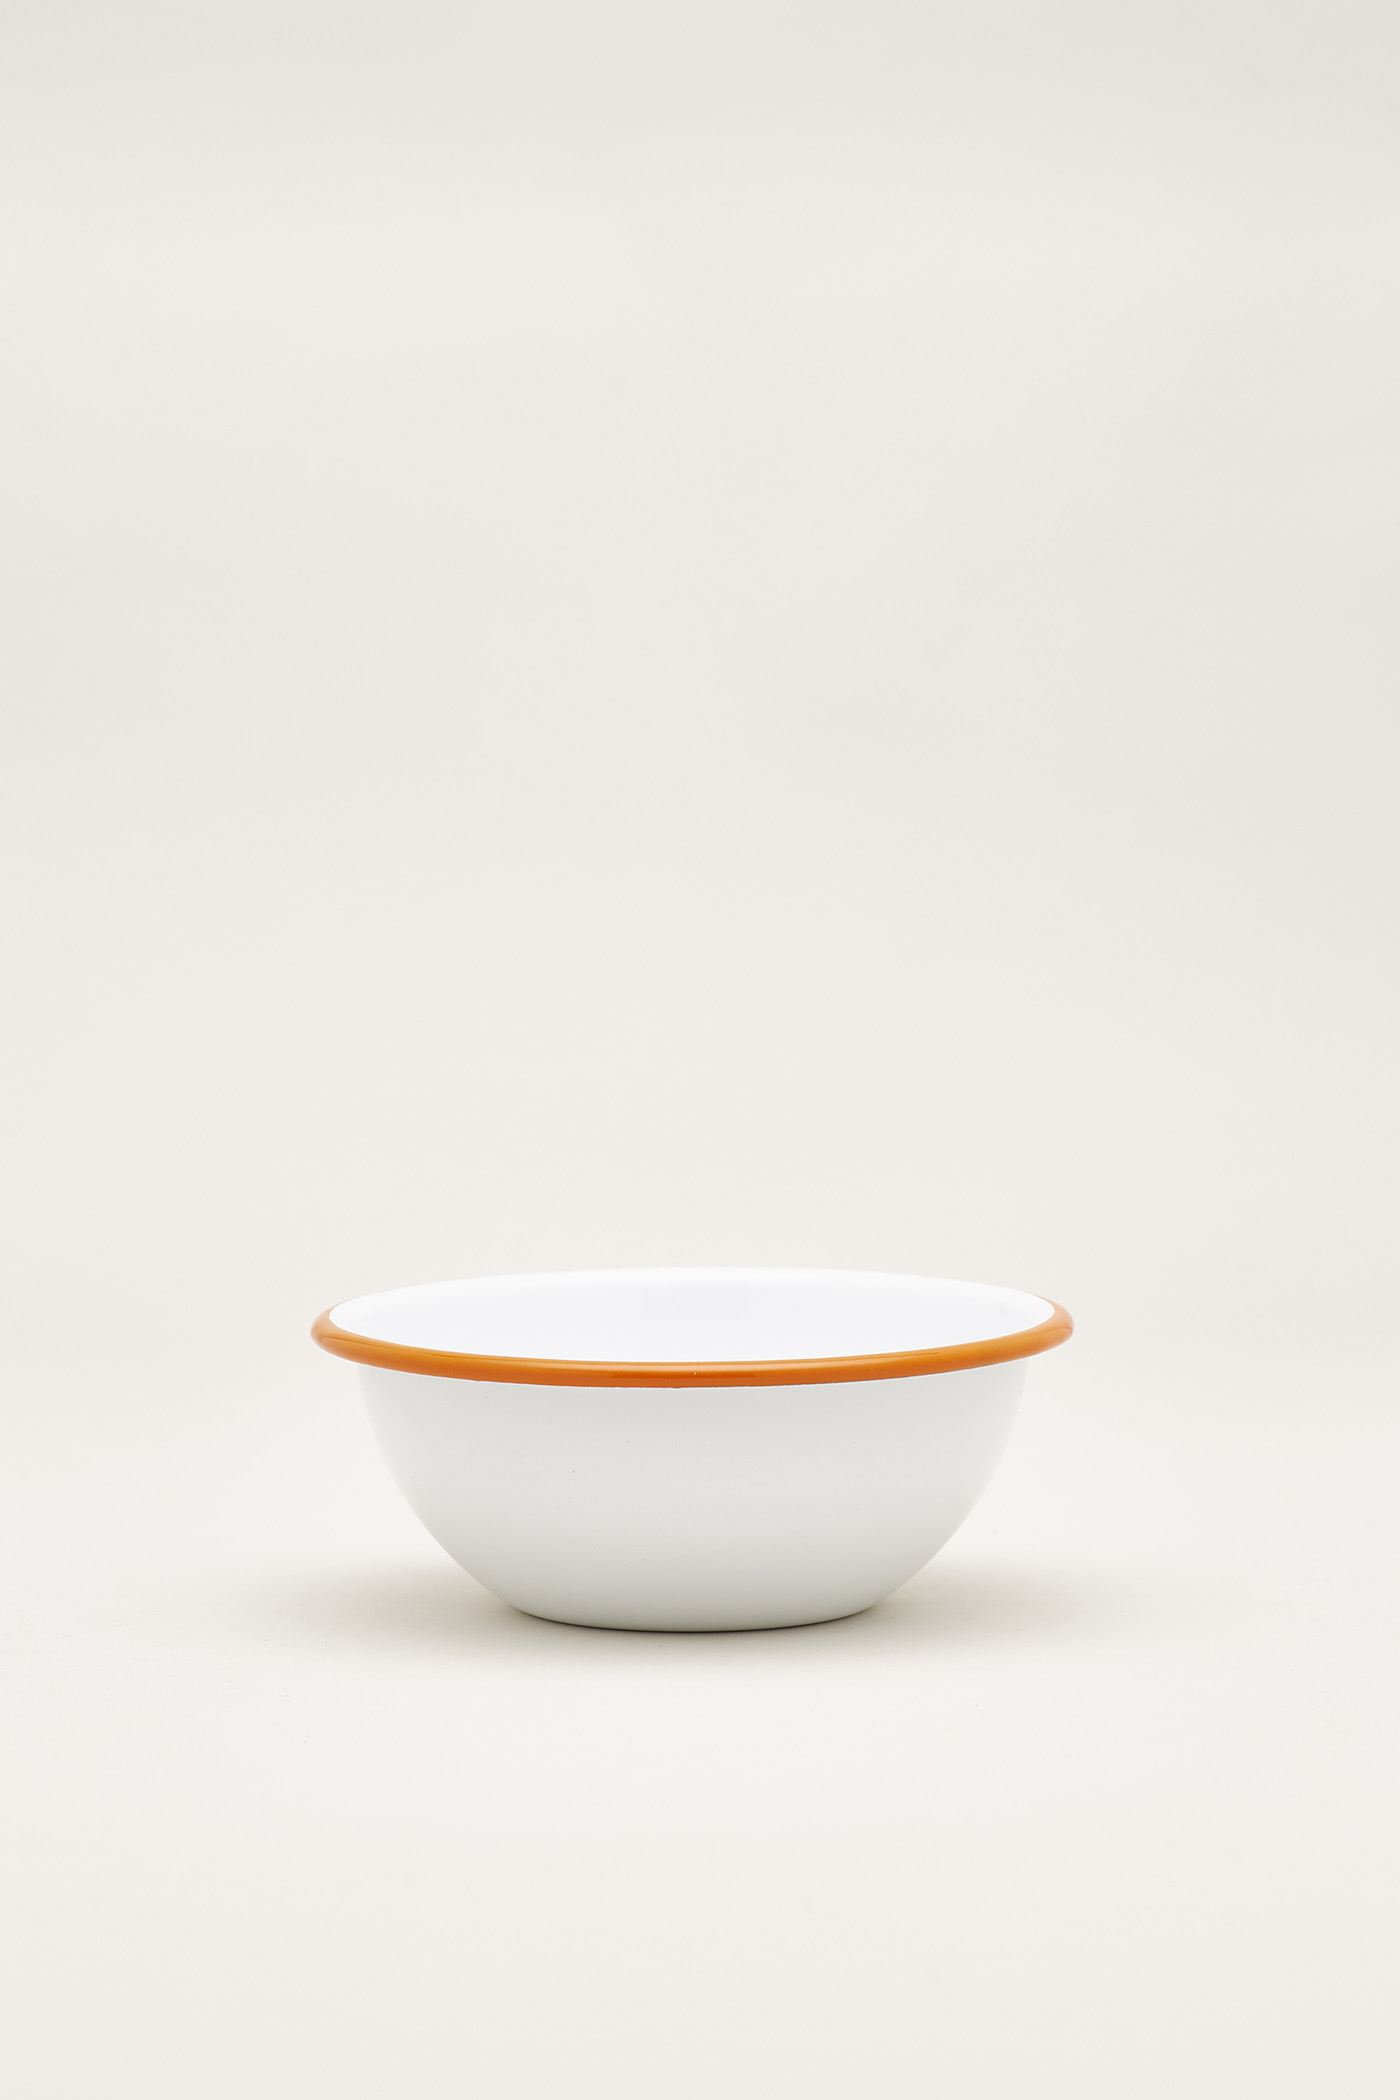 Crow Canyon Home Cereal Bowl